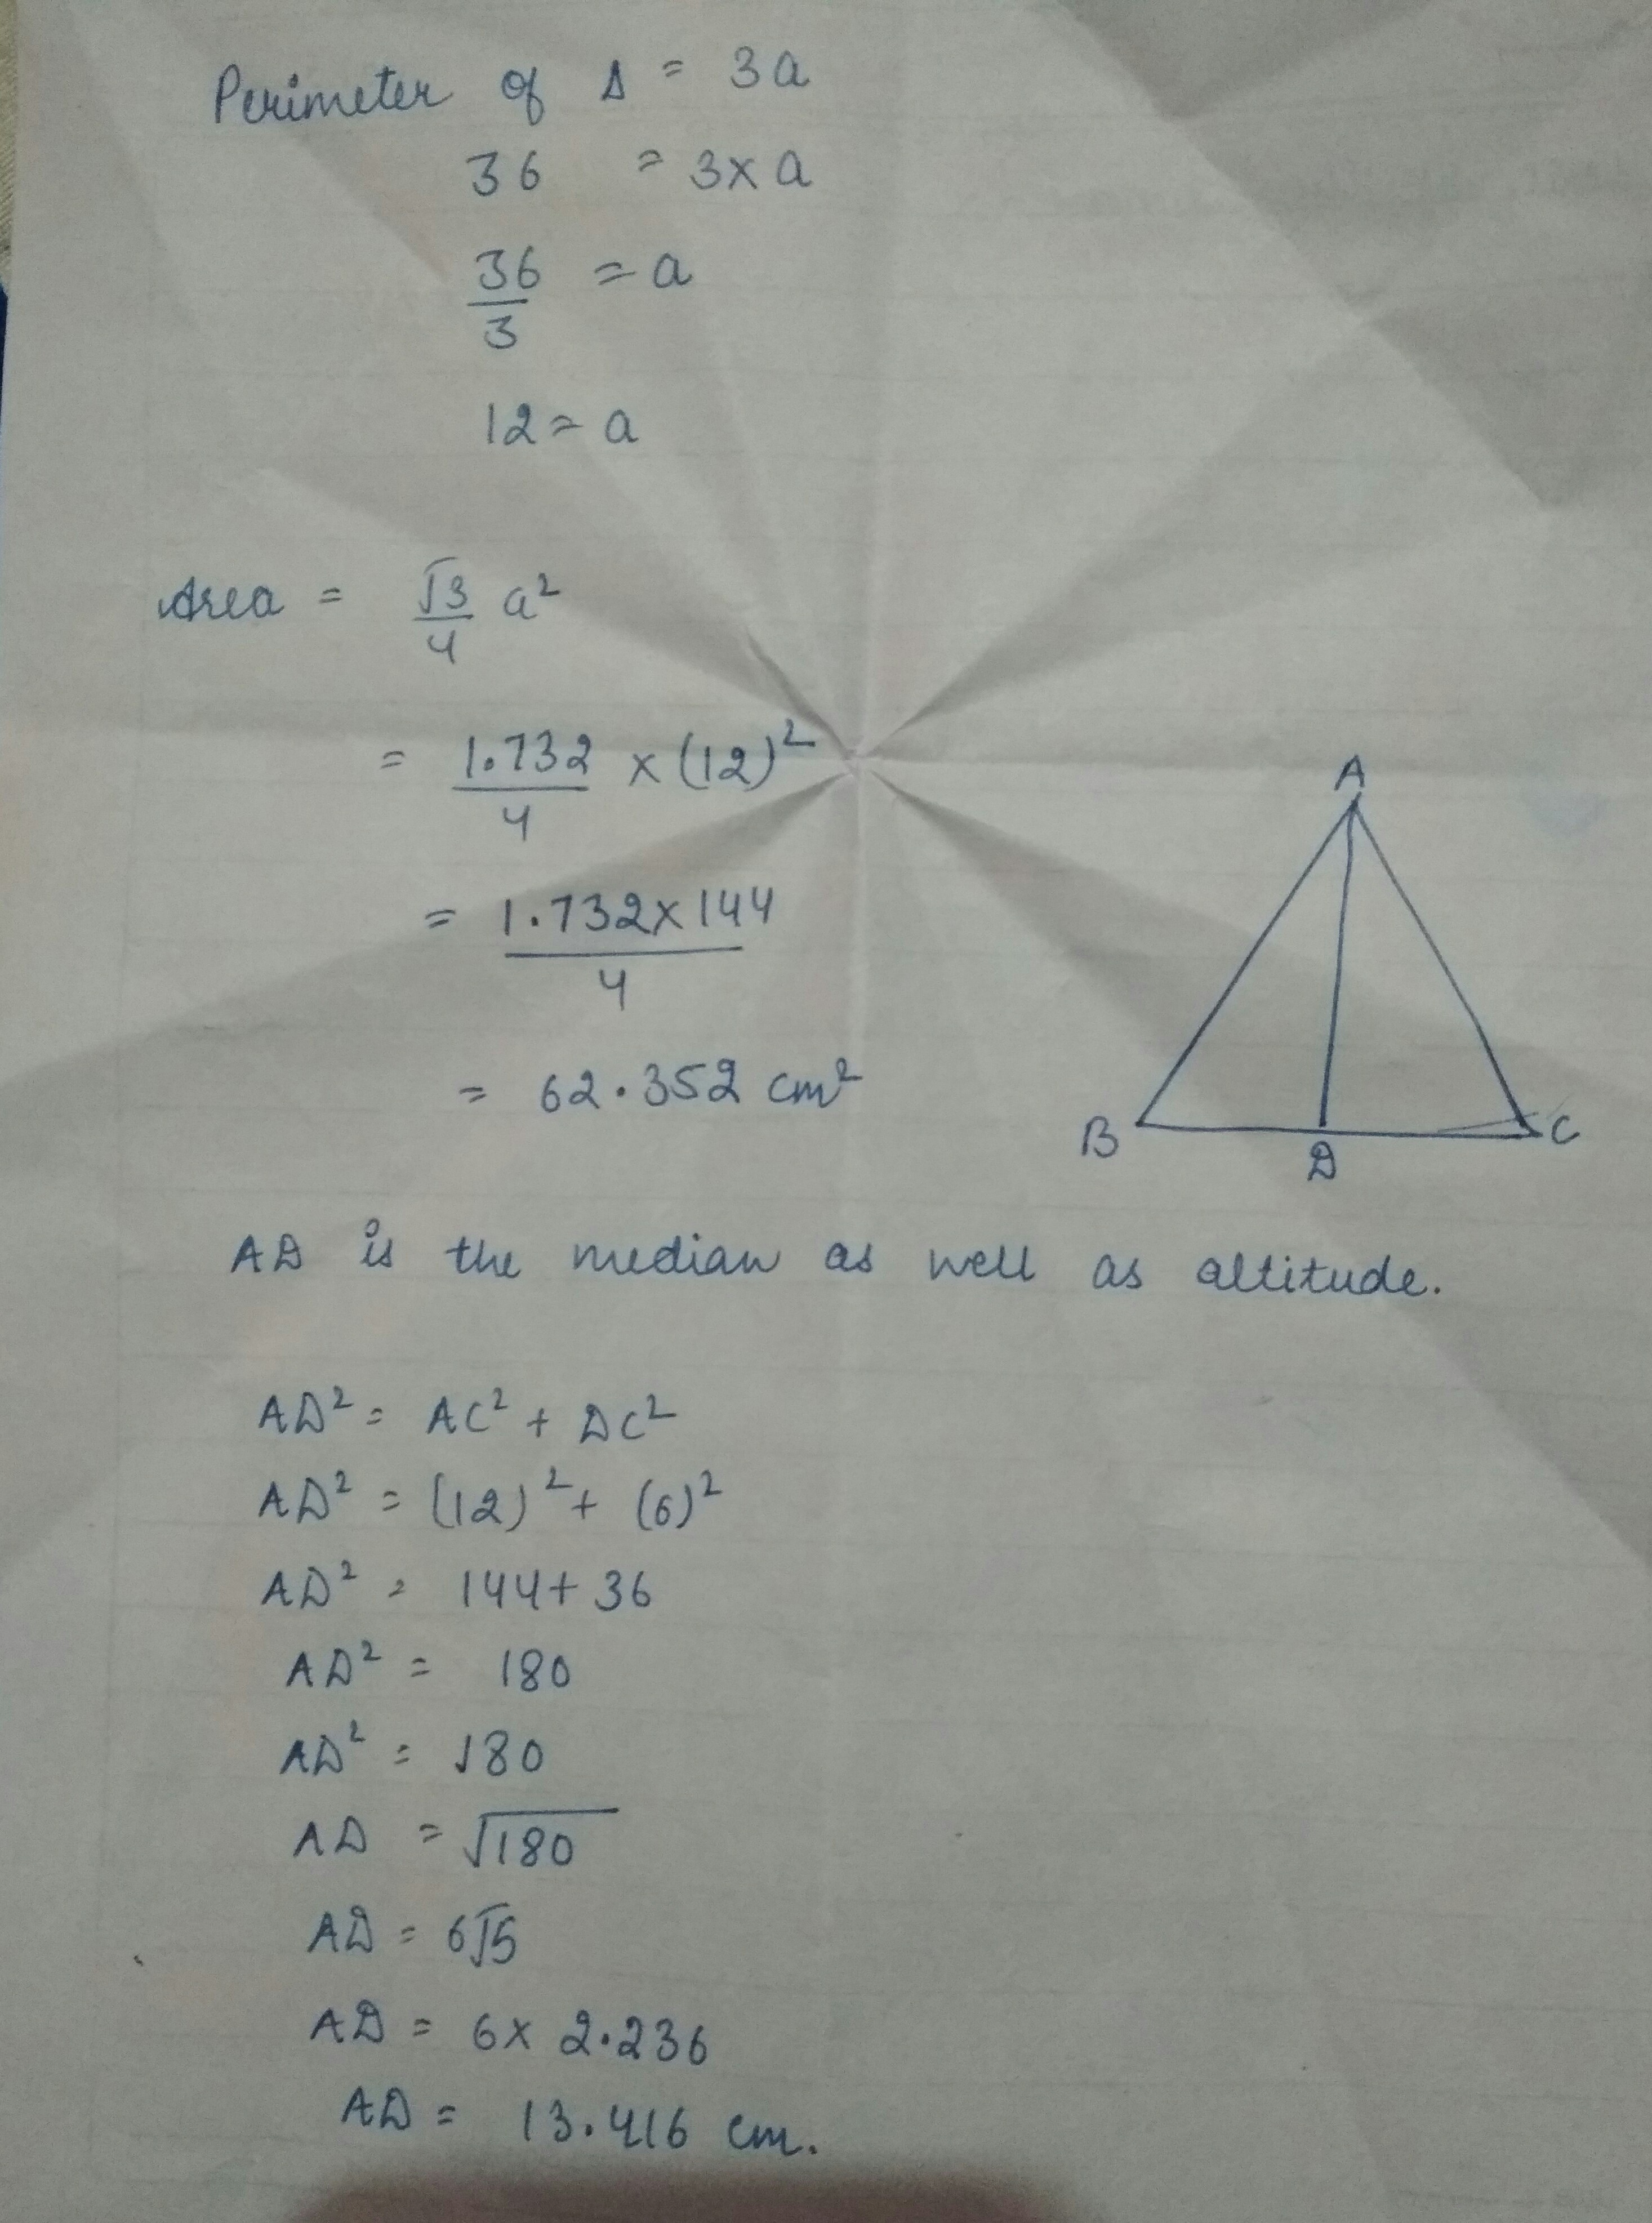 If The Perimeter Of An Equilateral Triangle Is 36cm